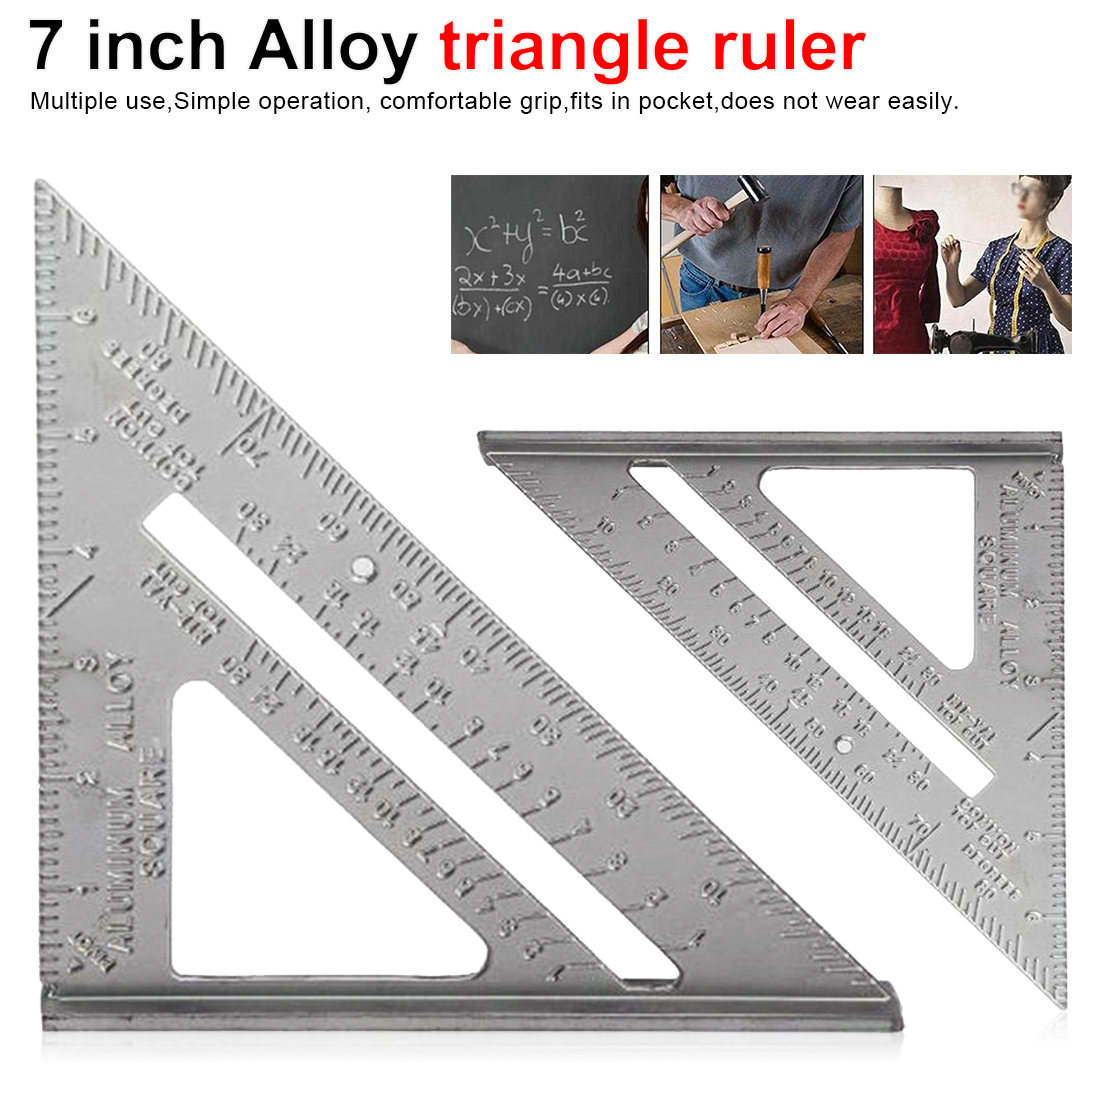 7 inch Triangle Ruler for Woodworking Square Layout Gauge Measuring Tool Woodworking Gauges Protractors Aluminum Alloy Metric